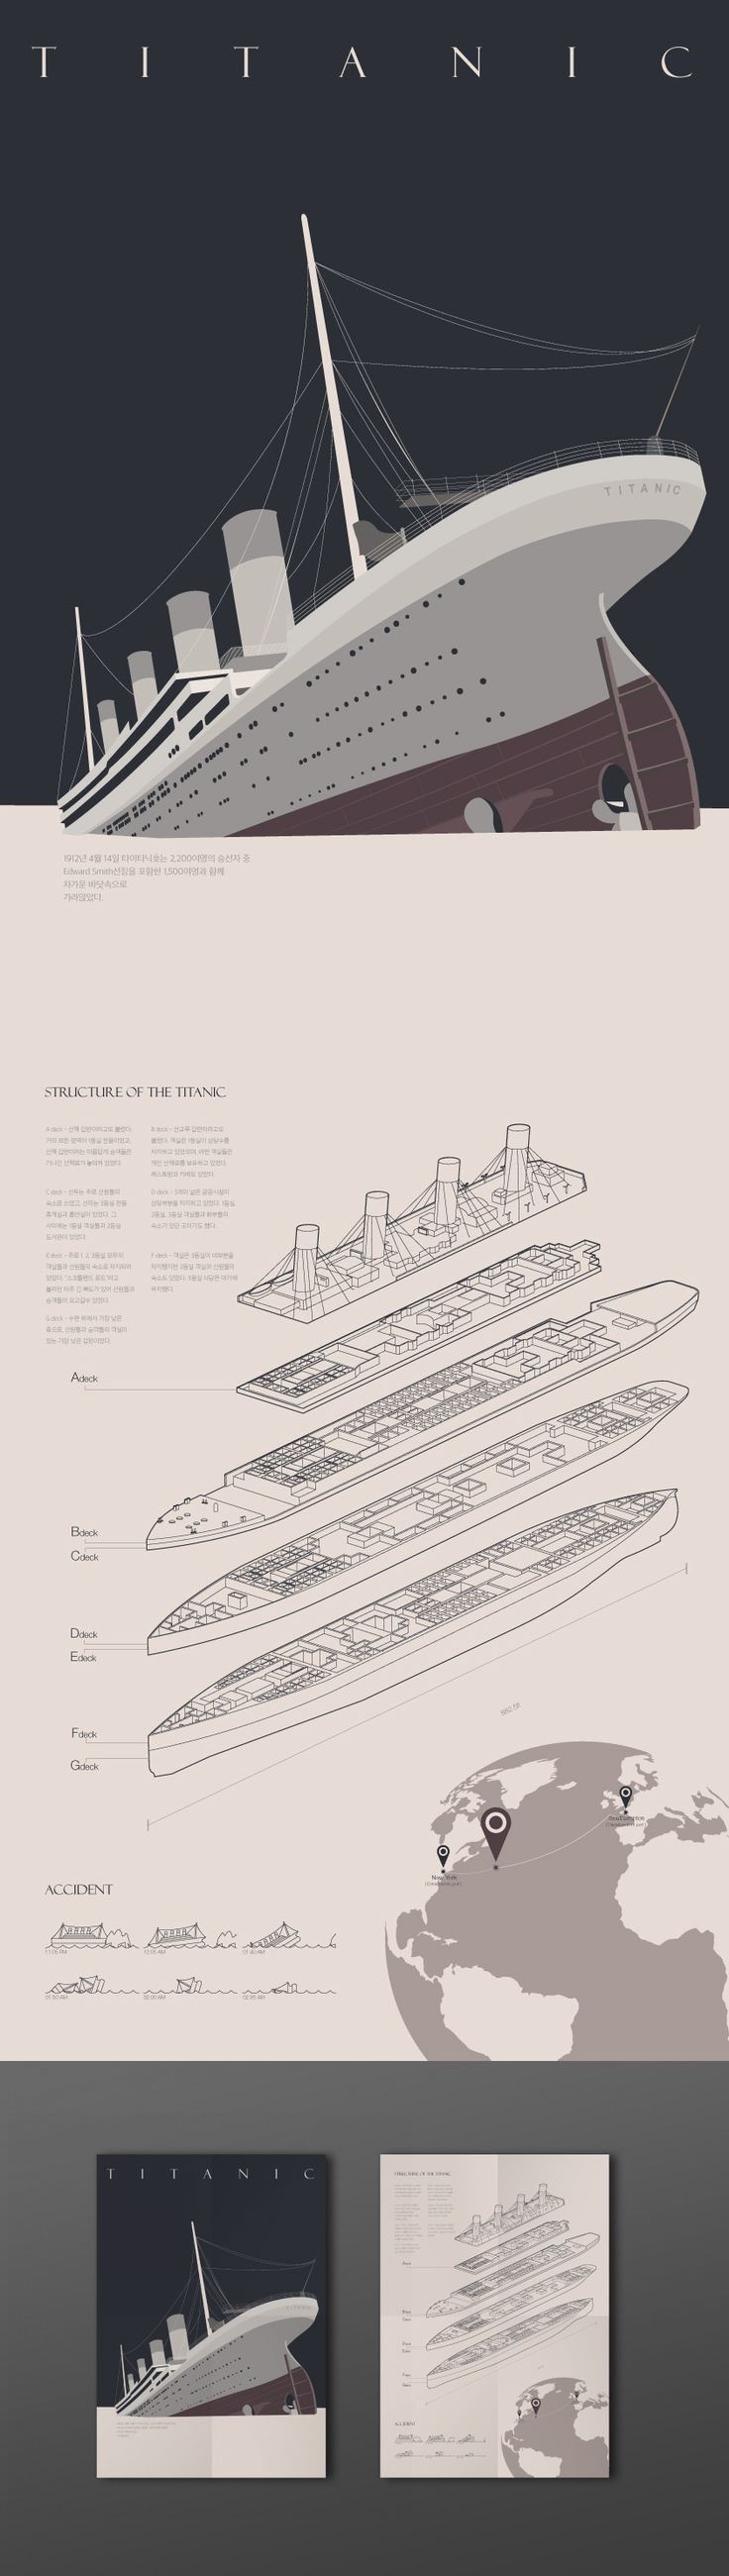 """Check out new work on my @Behance portfolio: """"TITANIC 1912  _Infographic"""" http://be.net/gallery/32272183/TITANIC-1912-_Infographic"""